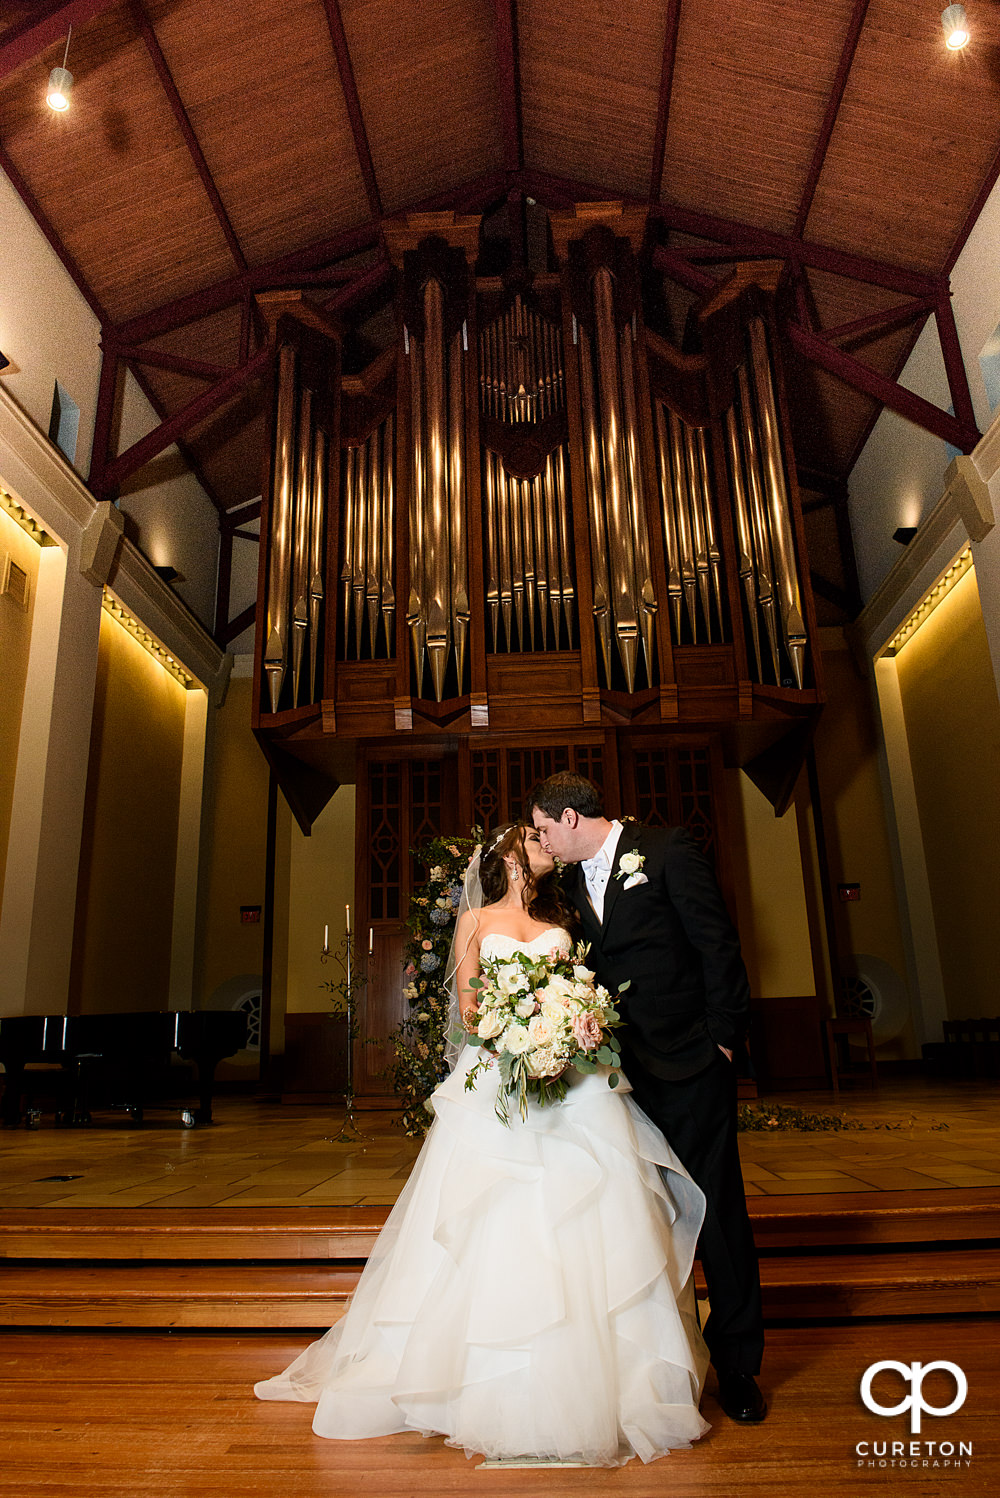 Couple kissing after their wedding at Daniel Chapel.